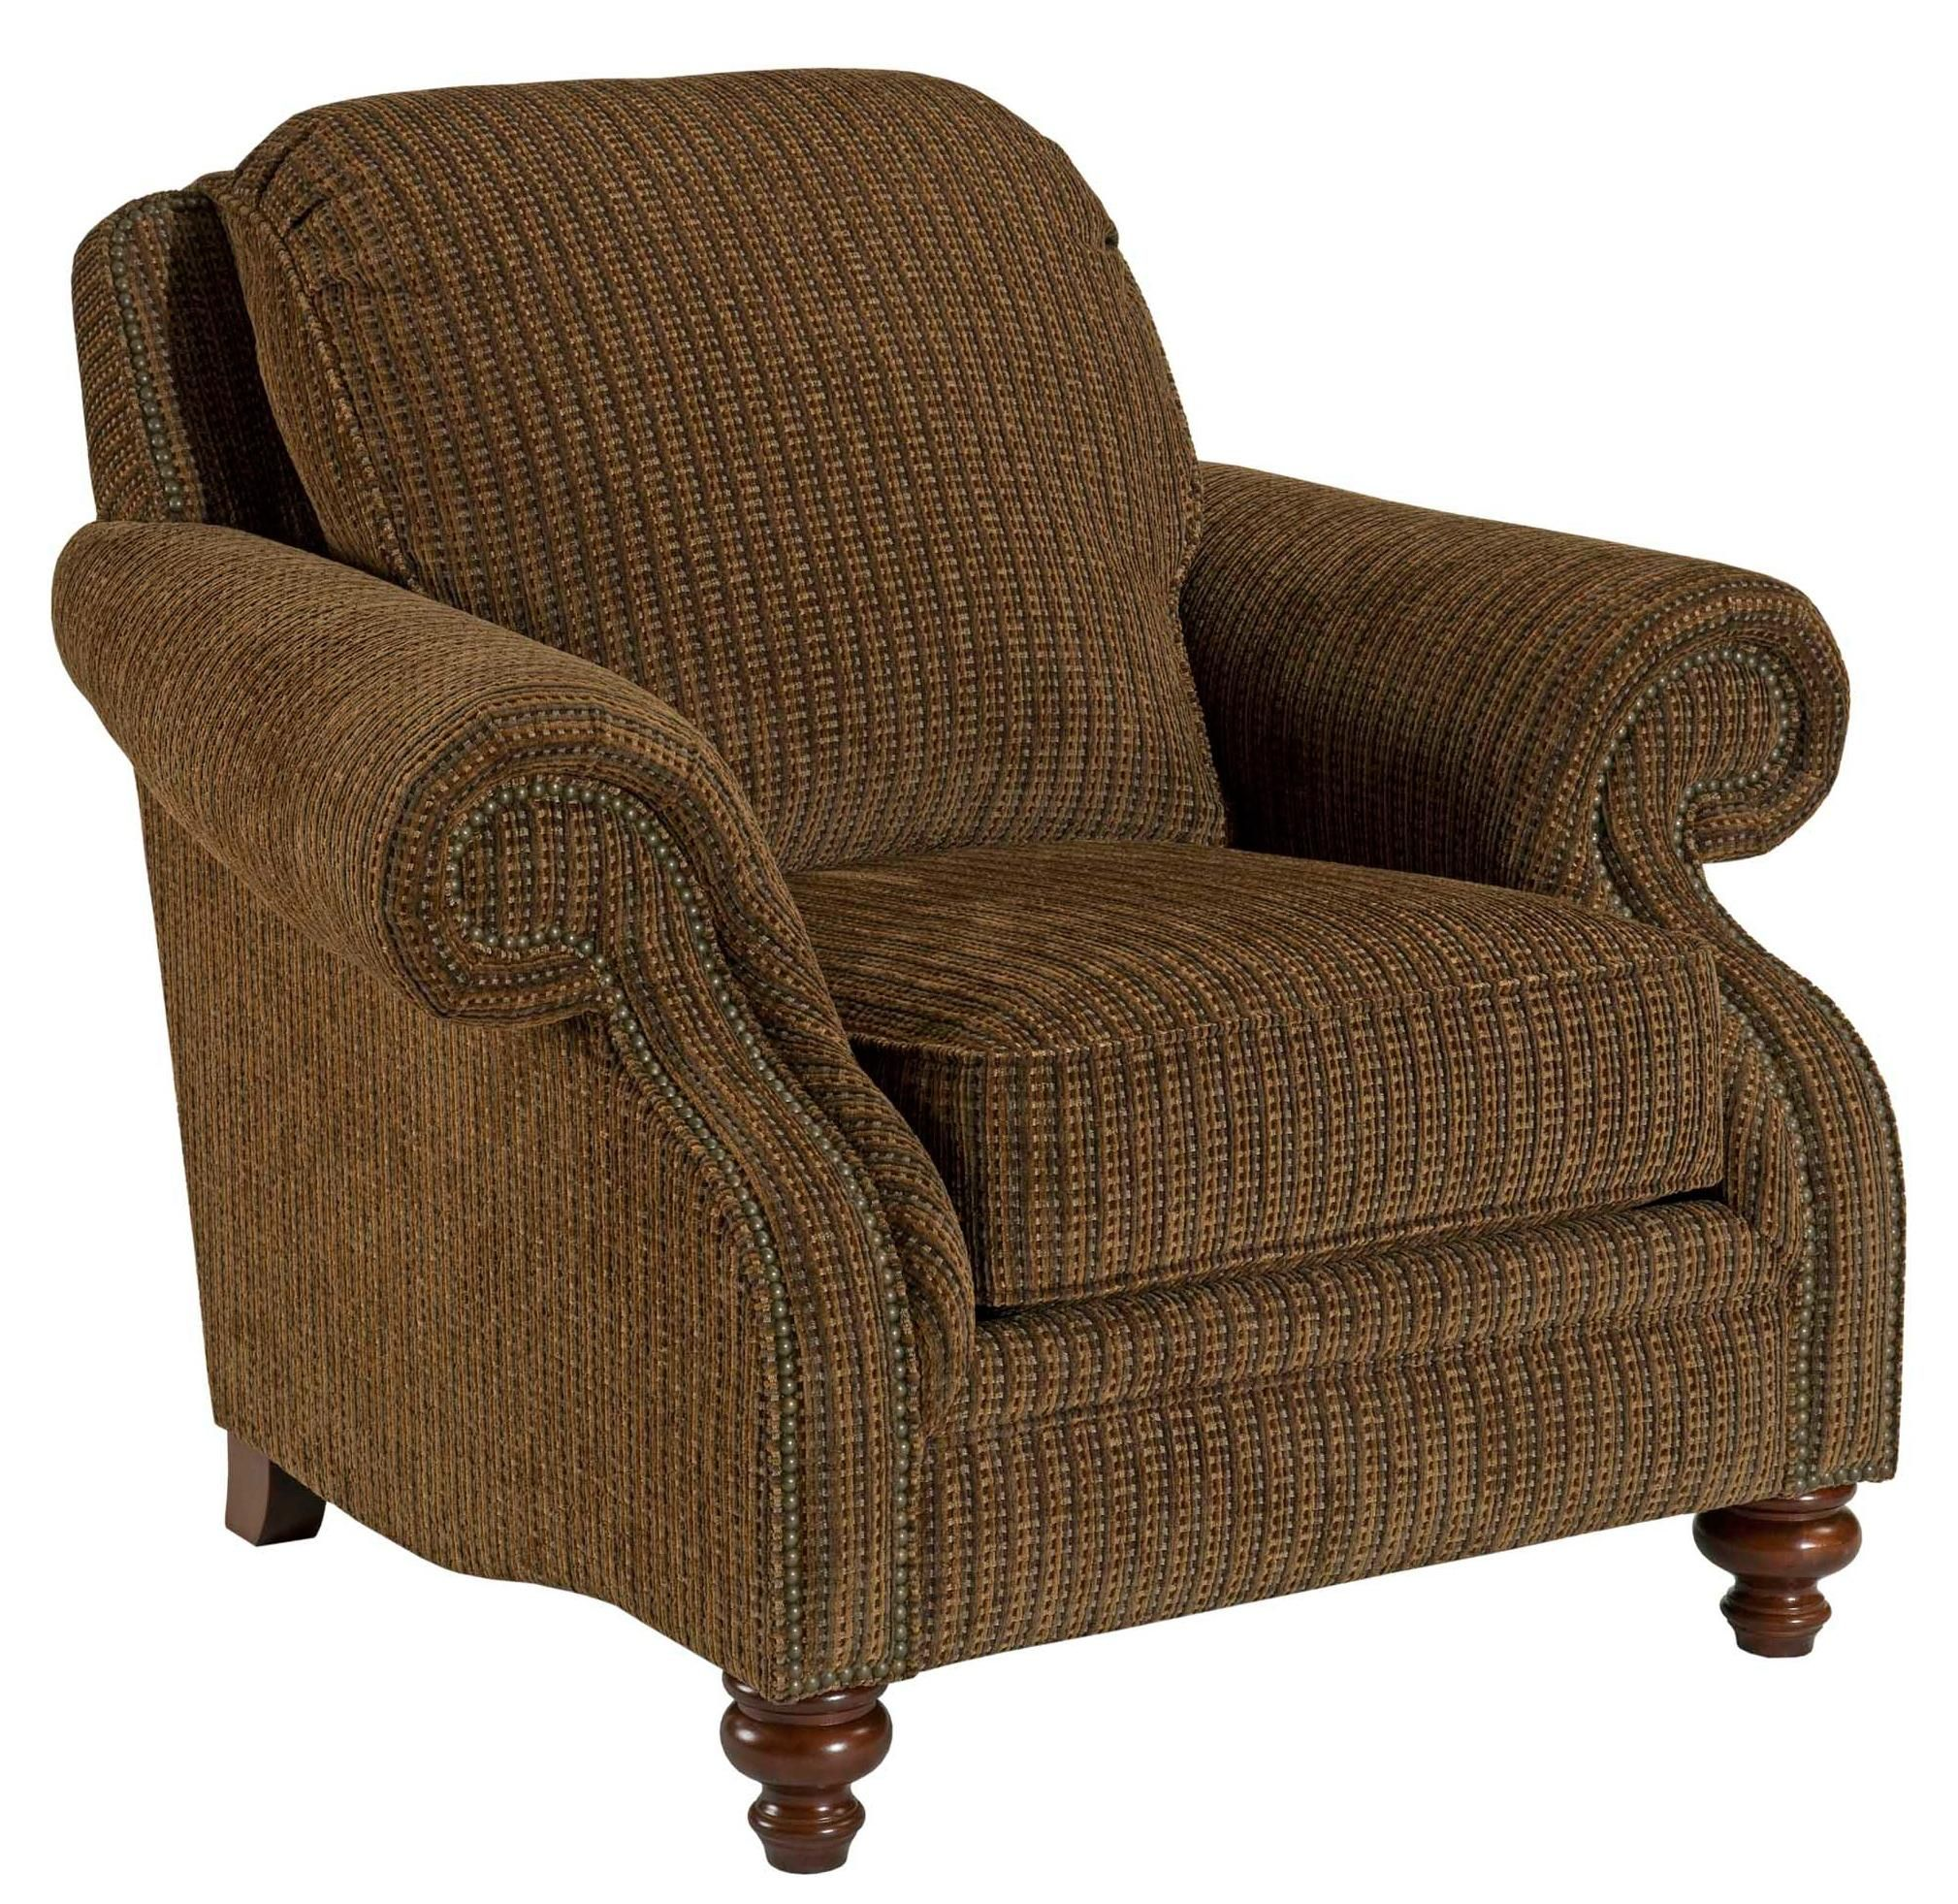 Newland Upholstered Chair by Broyhill Furniture